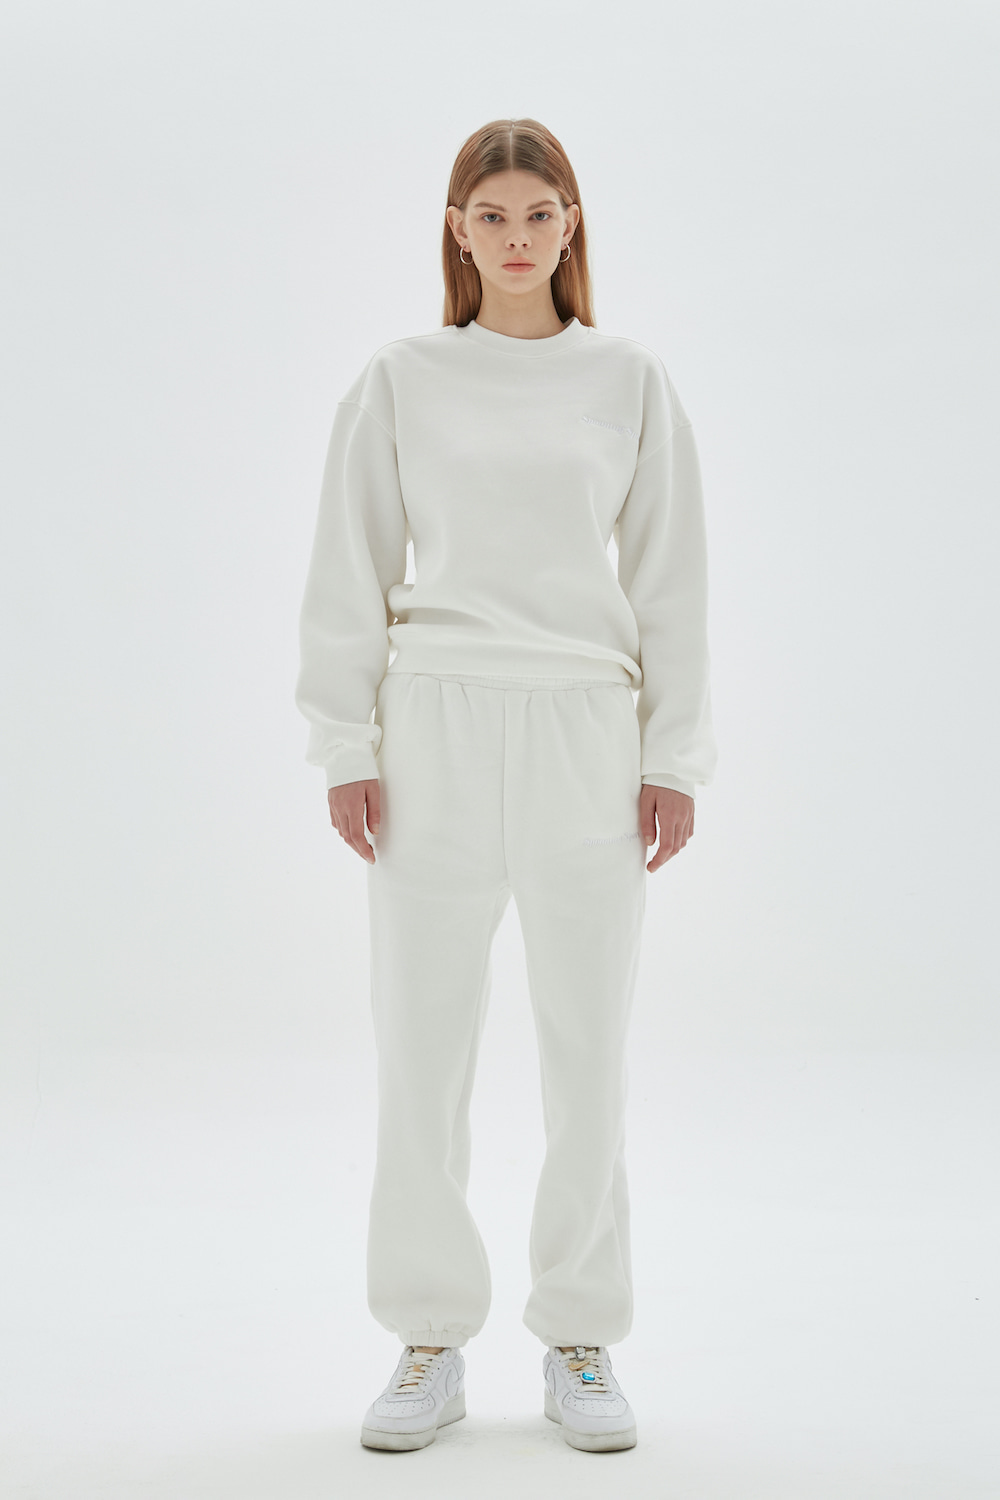 [DROP 3] SPOONING SPORT SWEATPANTS